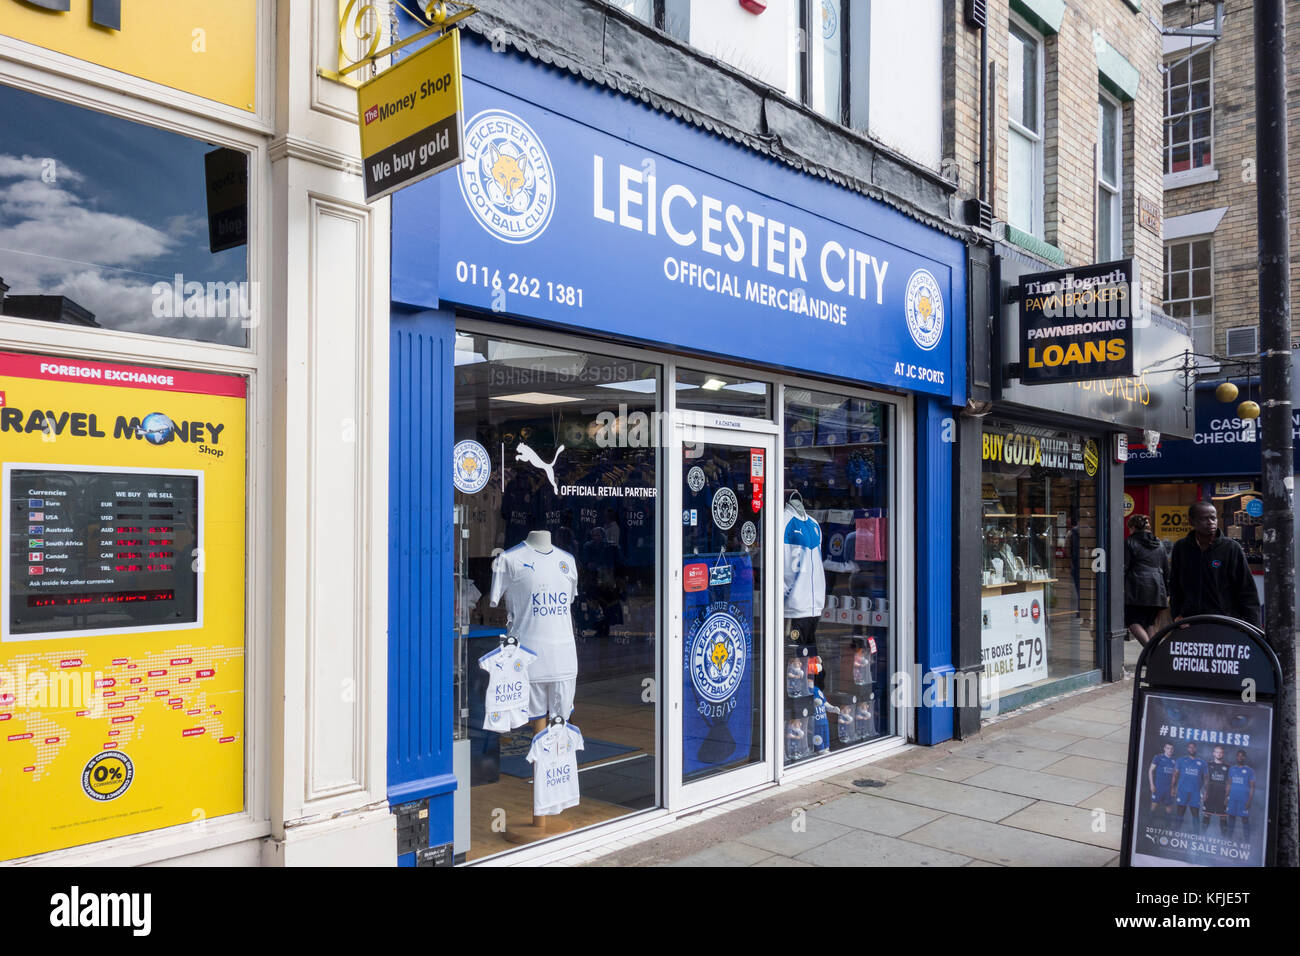 Leicester City Football Club Official Merchandise - shop in city centre, Leicestershire, East Midlands, UK - Stock Image